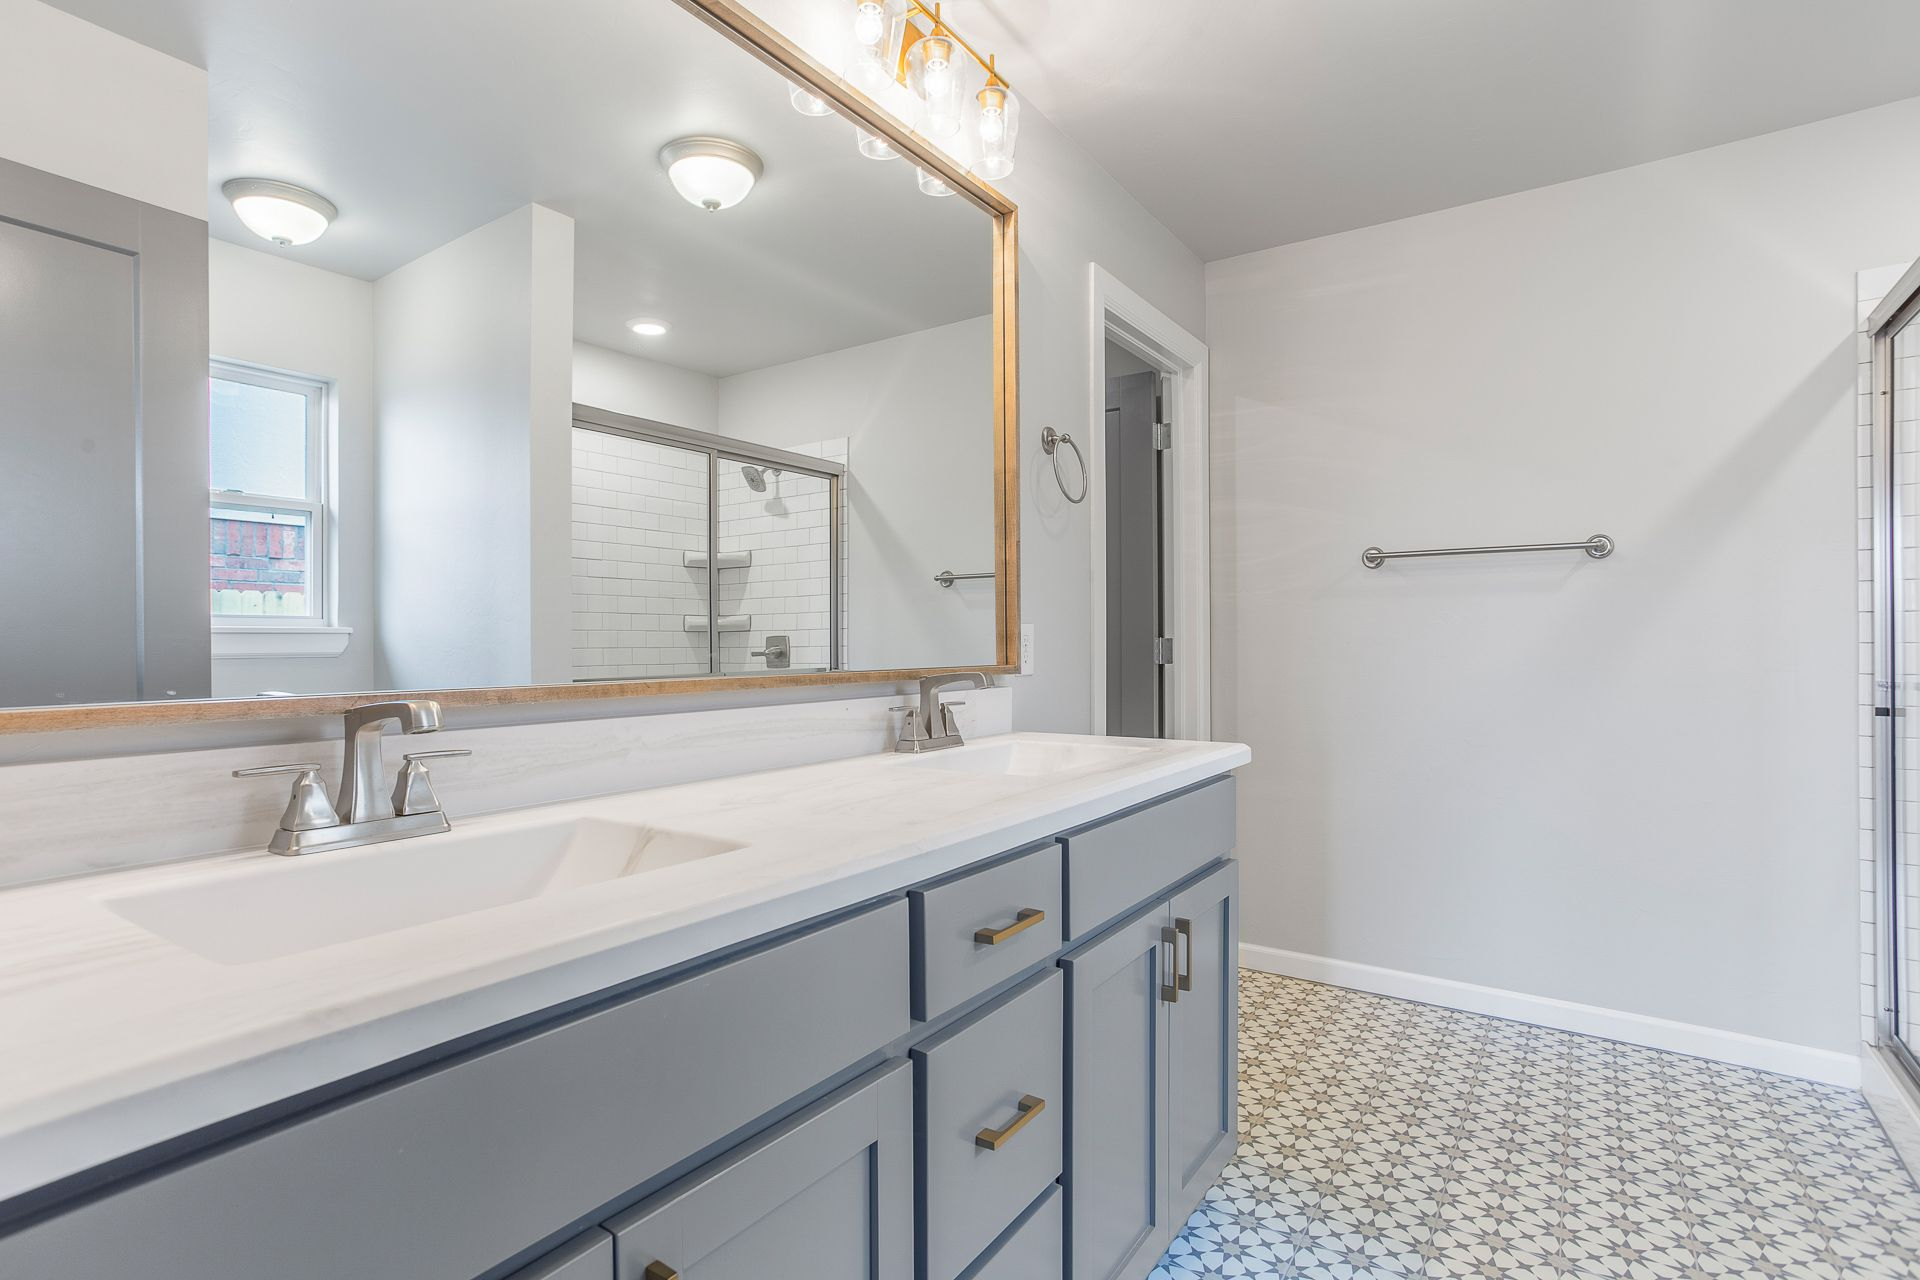 Bathroom featured in the Forrester By Ideal Homes in Oklahoma City, OK